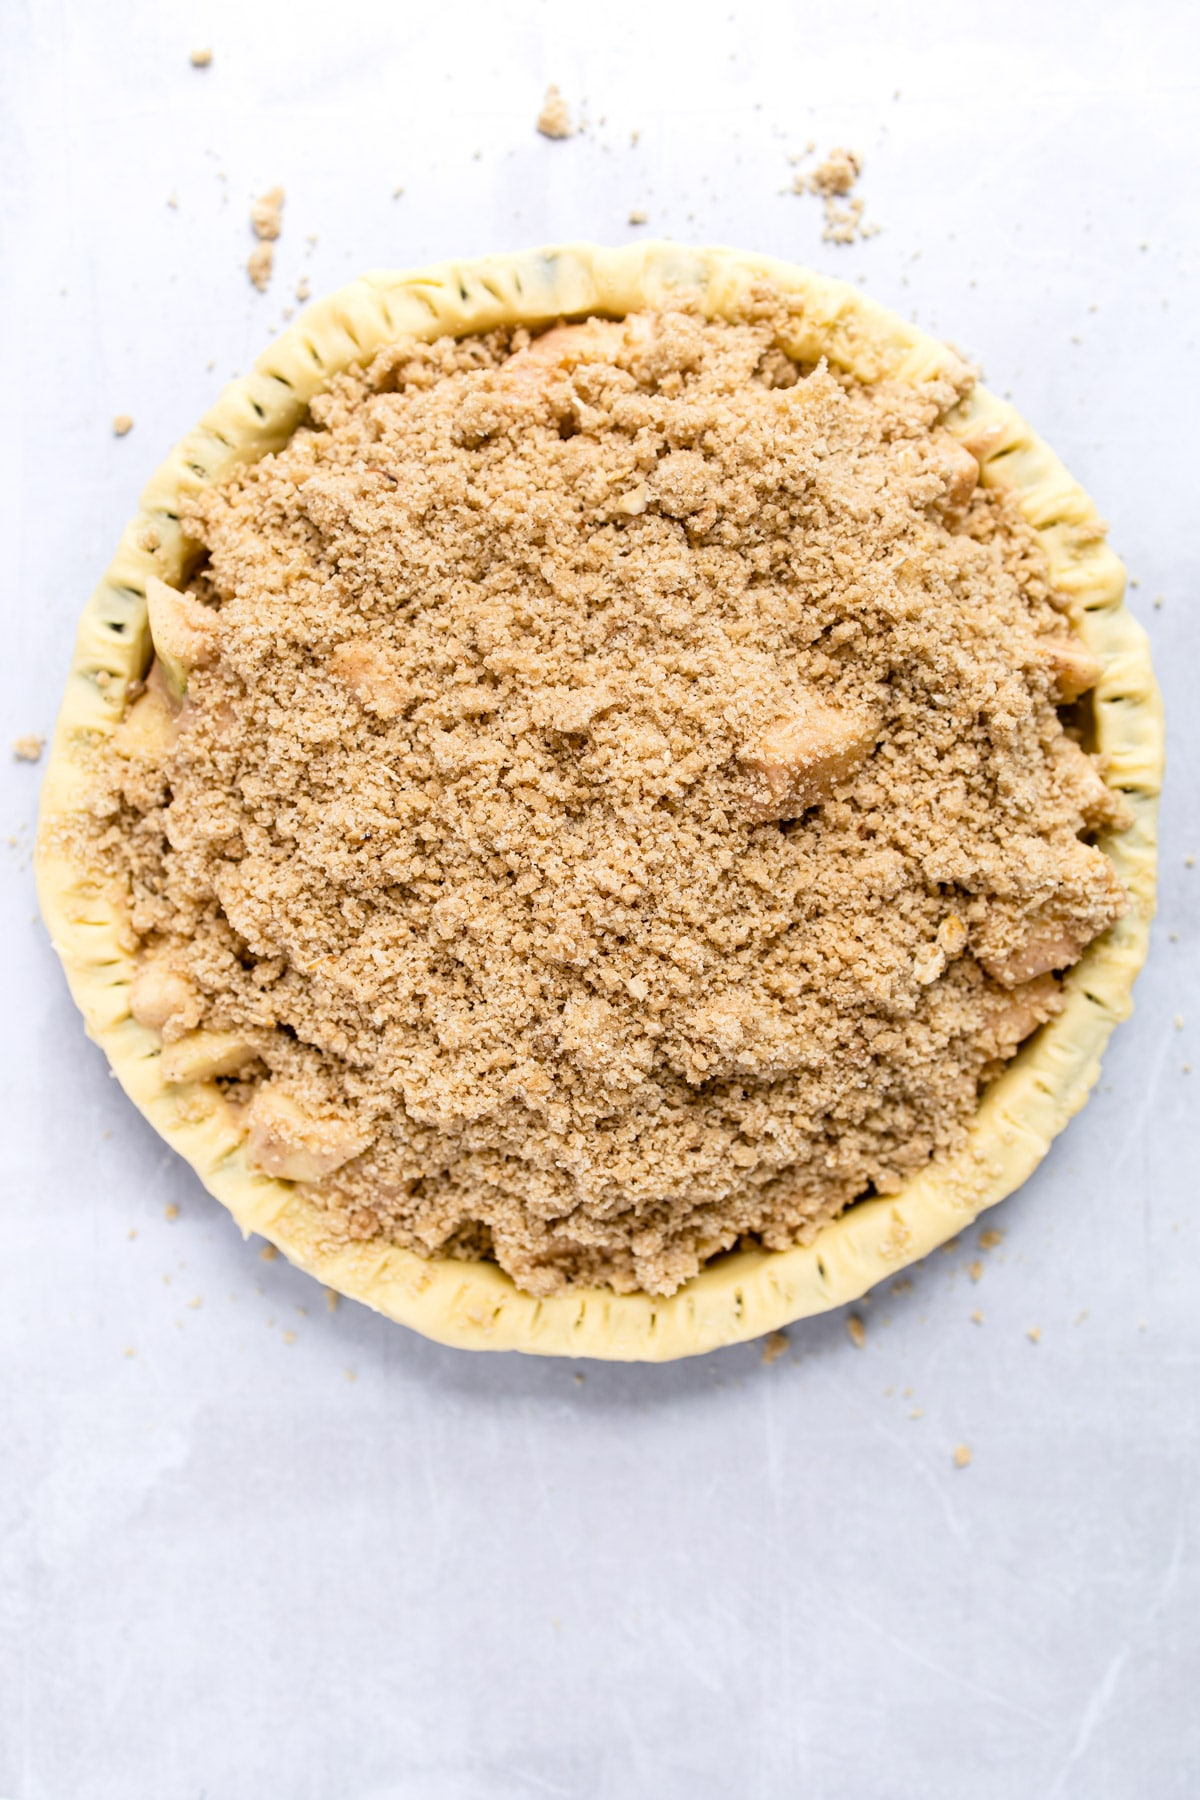 unbaked crumb topping on an unbaked apple crumb pie.